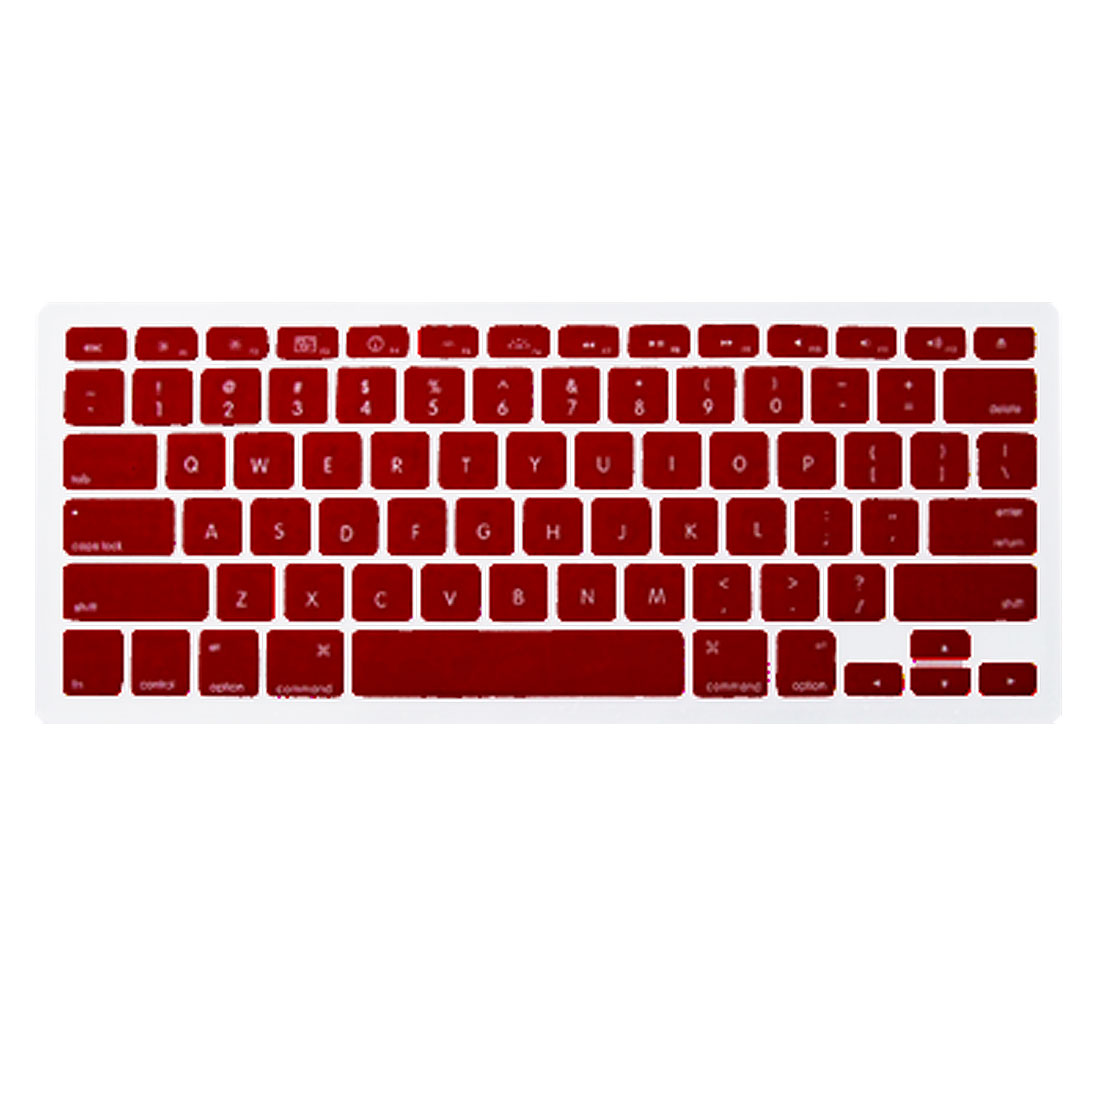 "Red Silicone Keyboard Skin Cover for MacBook 13.3"" Hejmk"